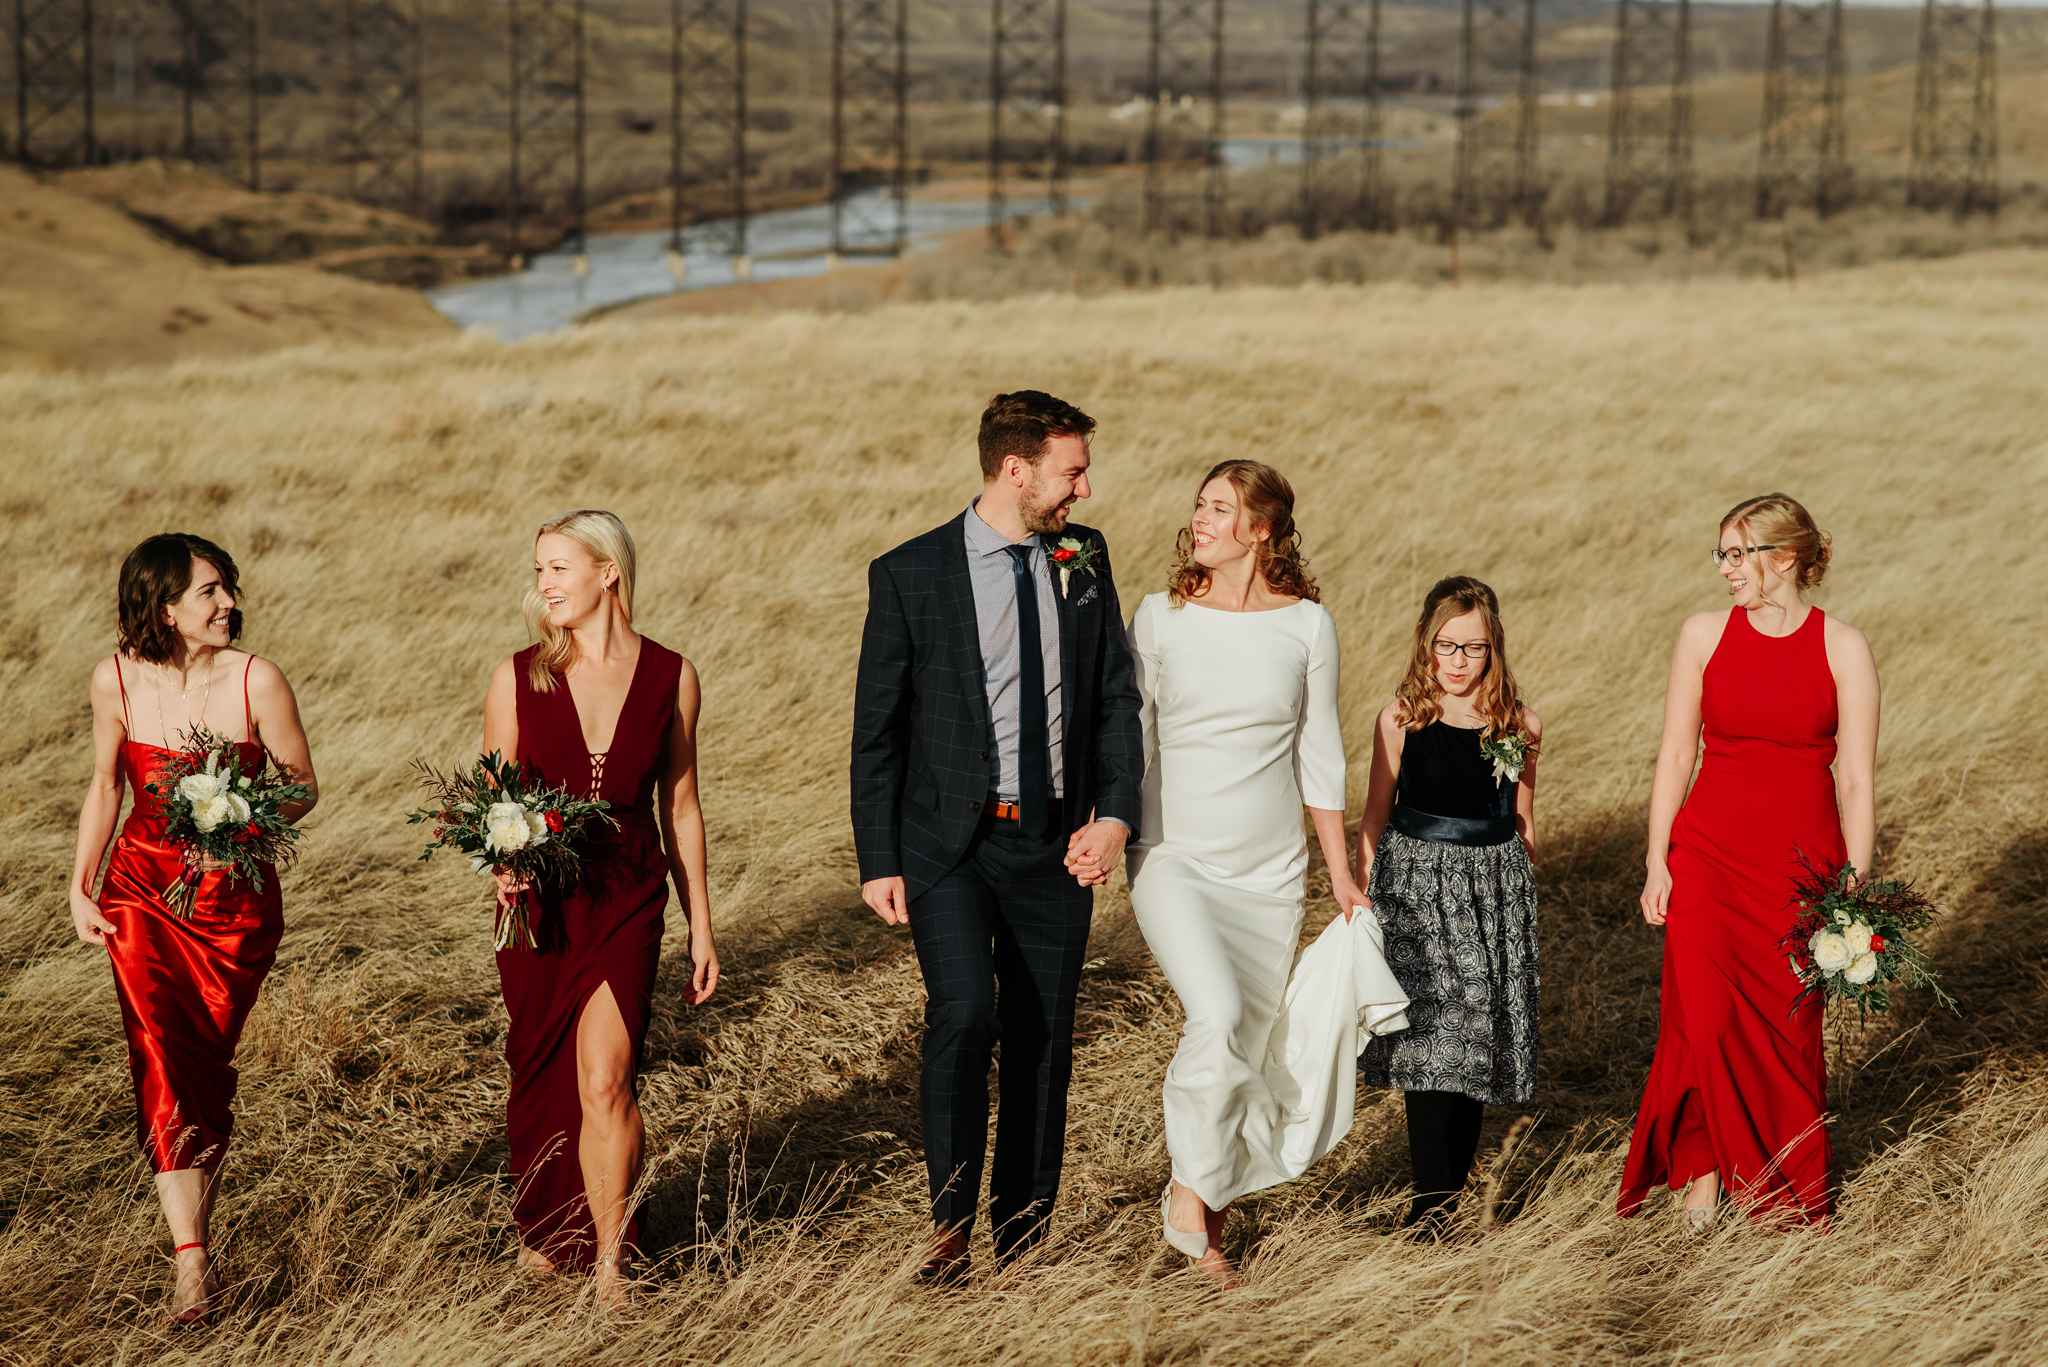 lethbridge-wedding-photographer-love-and-be-loved-photography-kris-amy-paradise-canyon-image-picture-photo-19.jpg